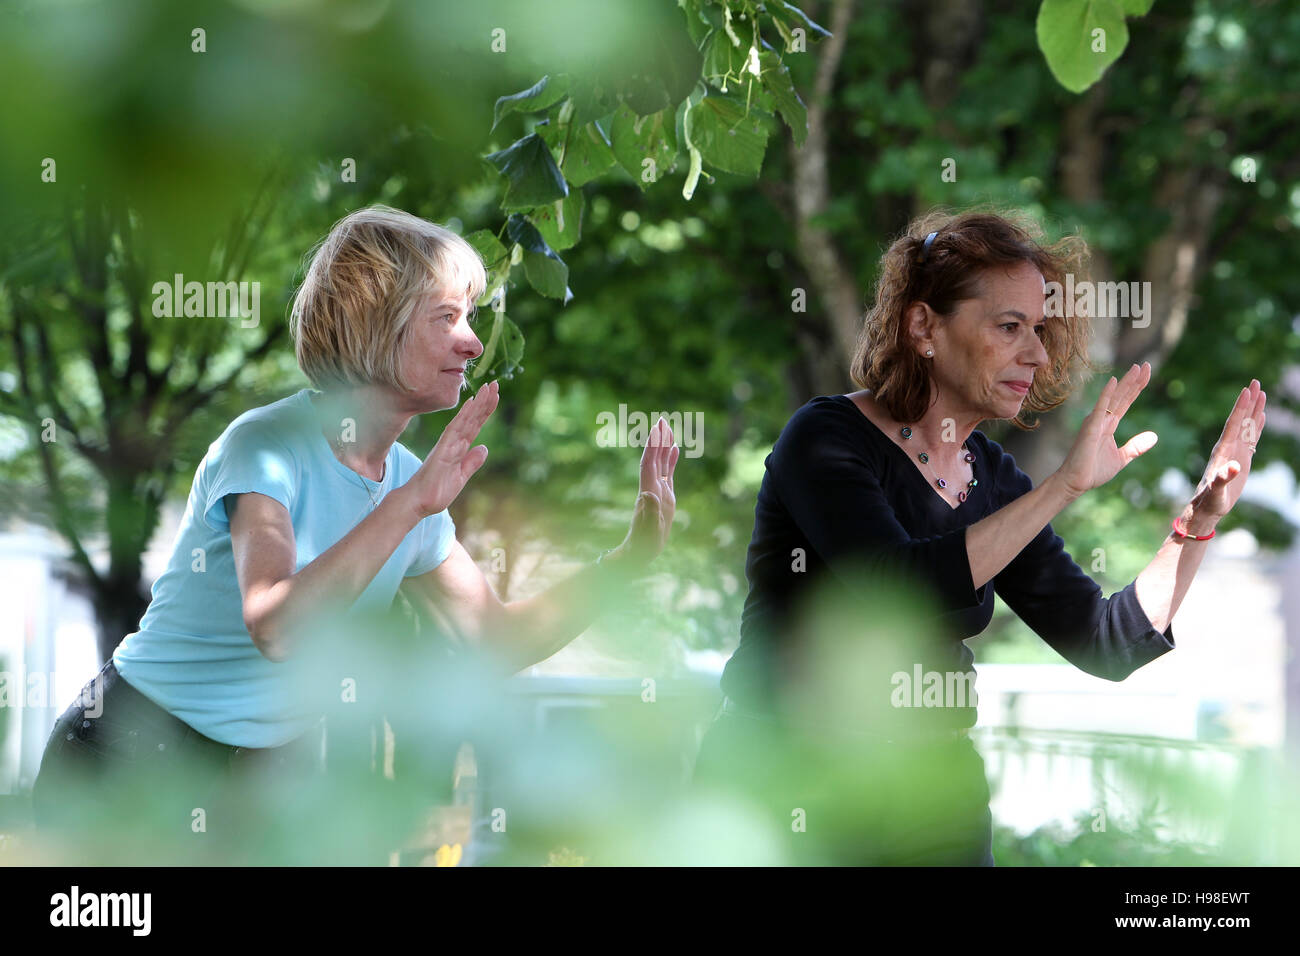 Tai Chi being practised by elderly caucasian women - Stock Image